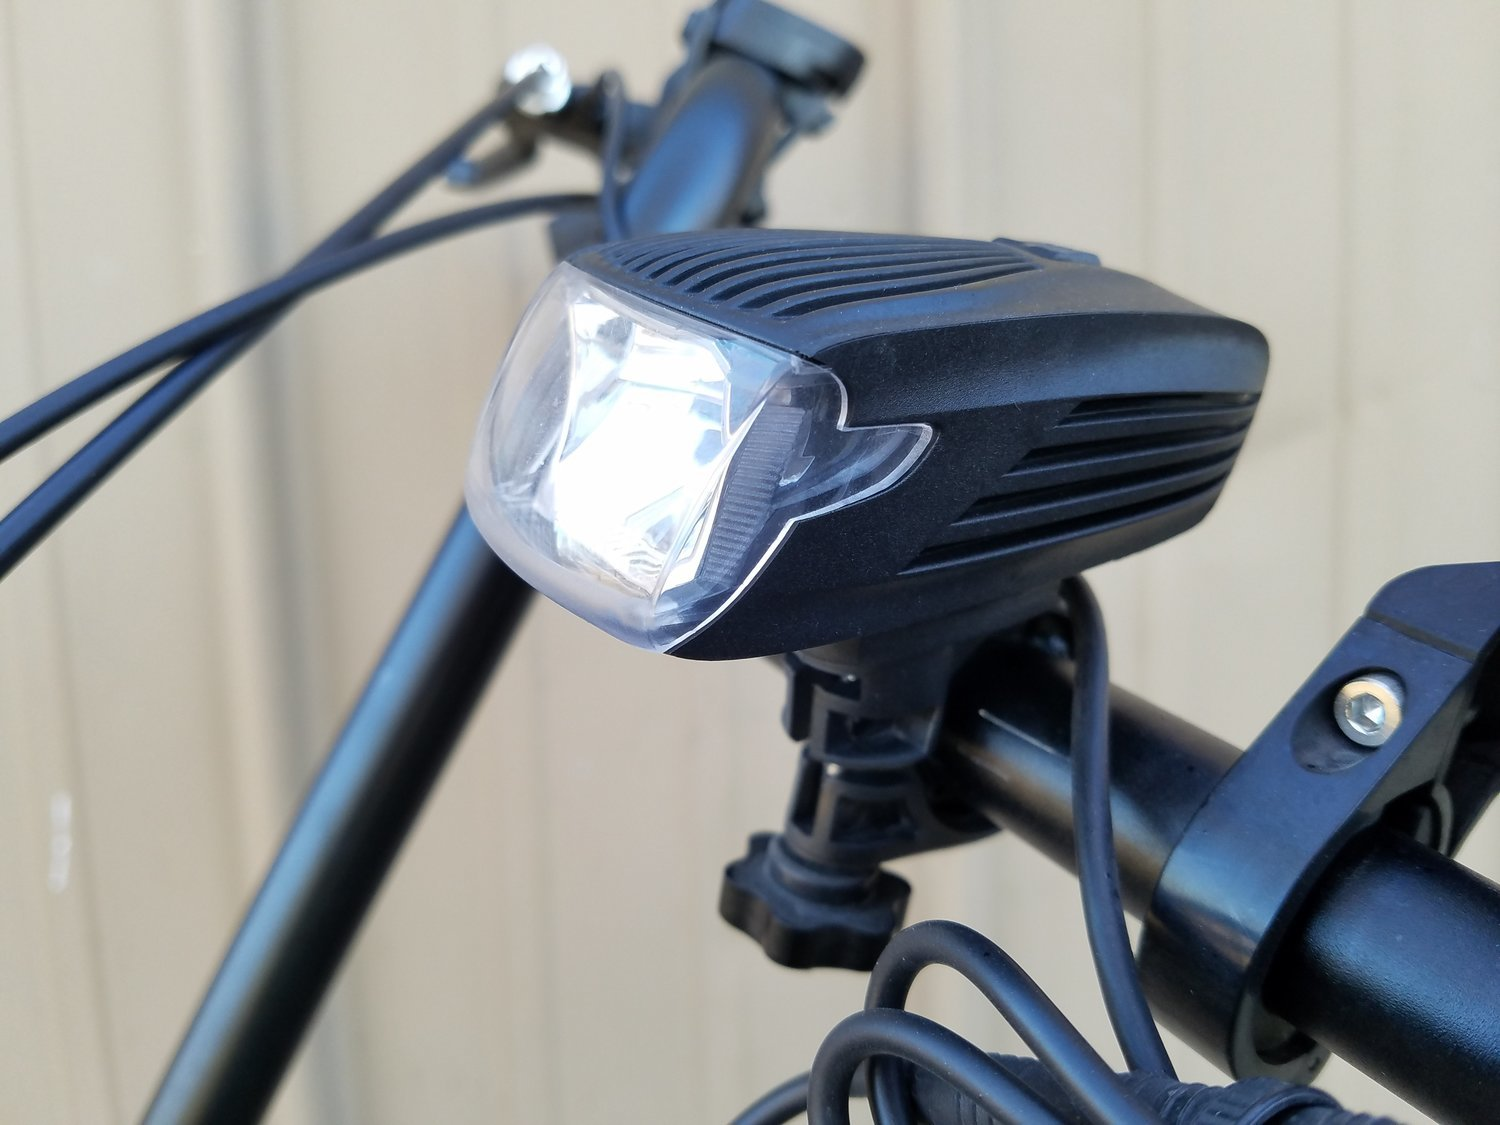 X1 Headlight